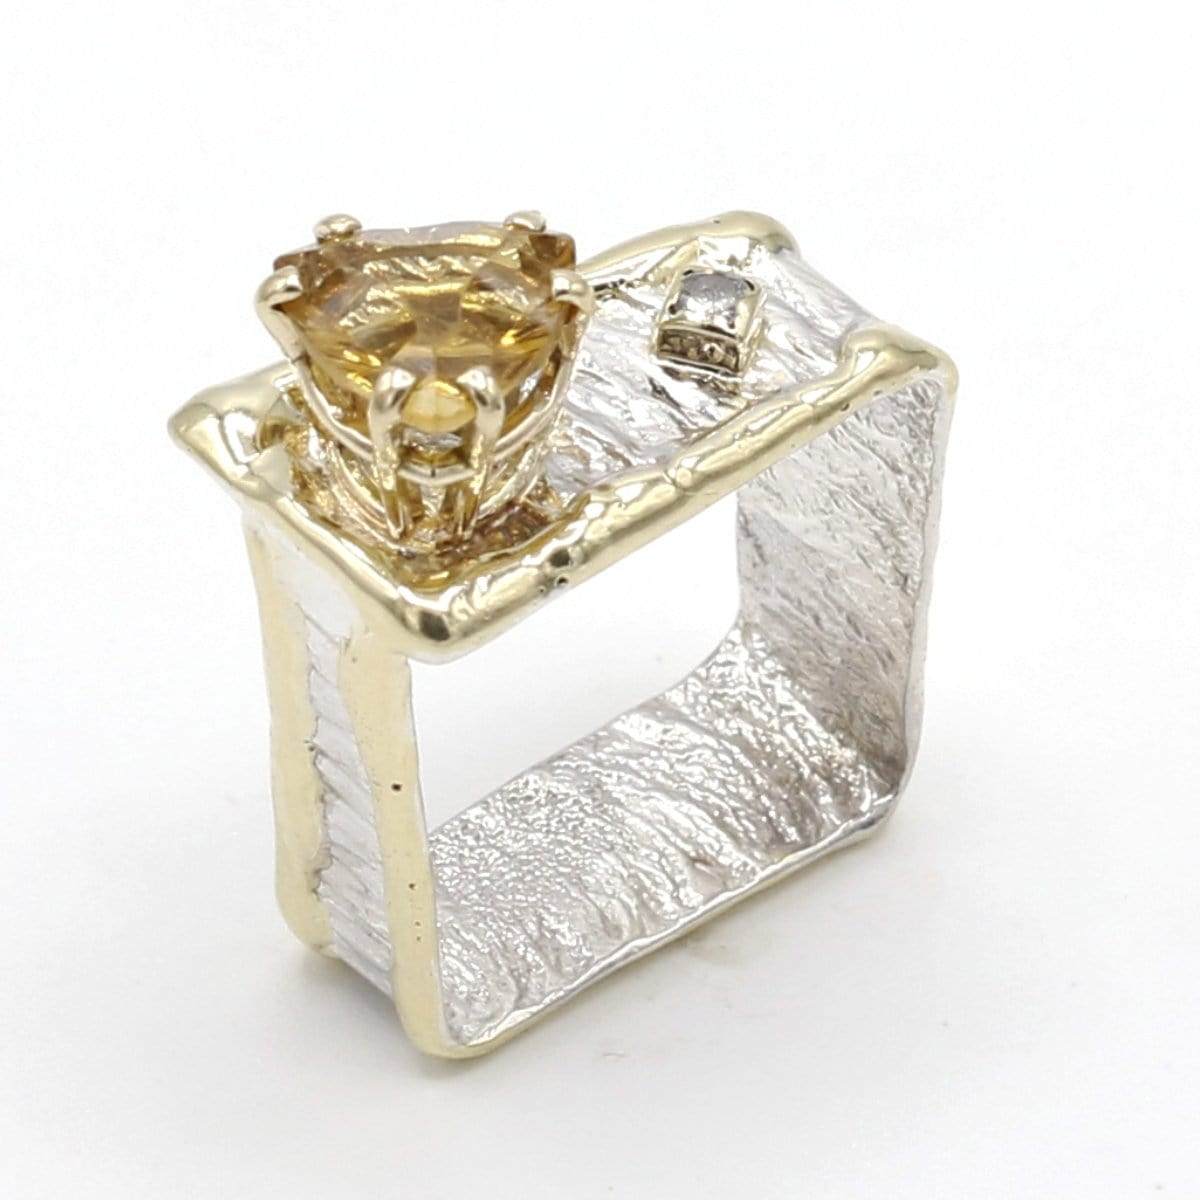 14K Gold & Crystalline Silver Diamond & Citrine Ring - 37410-Fusion Designs-Renee Taylor Gallery